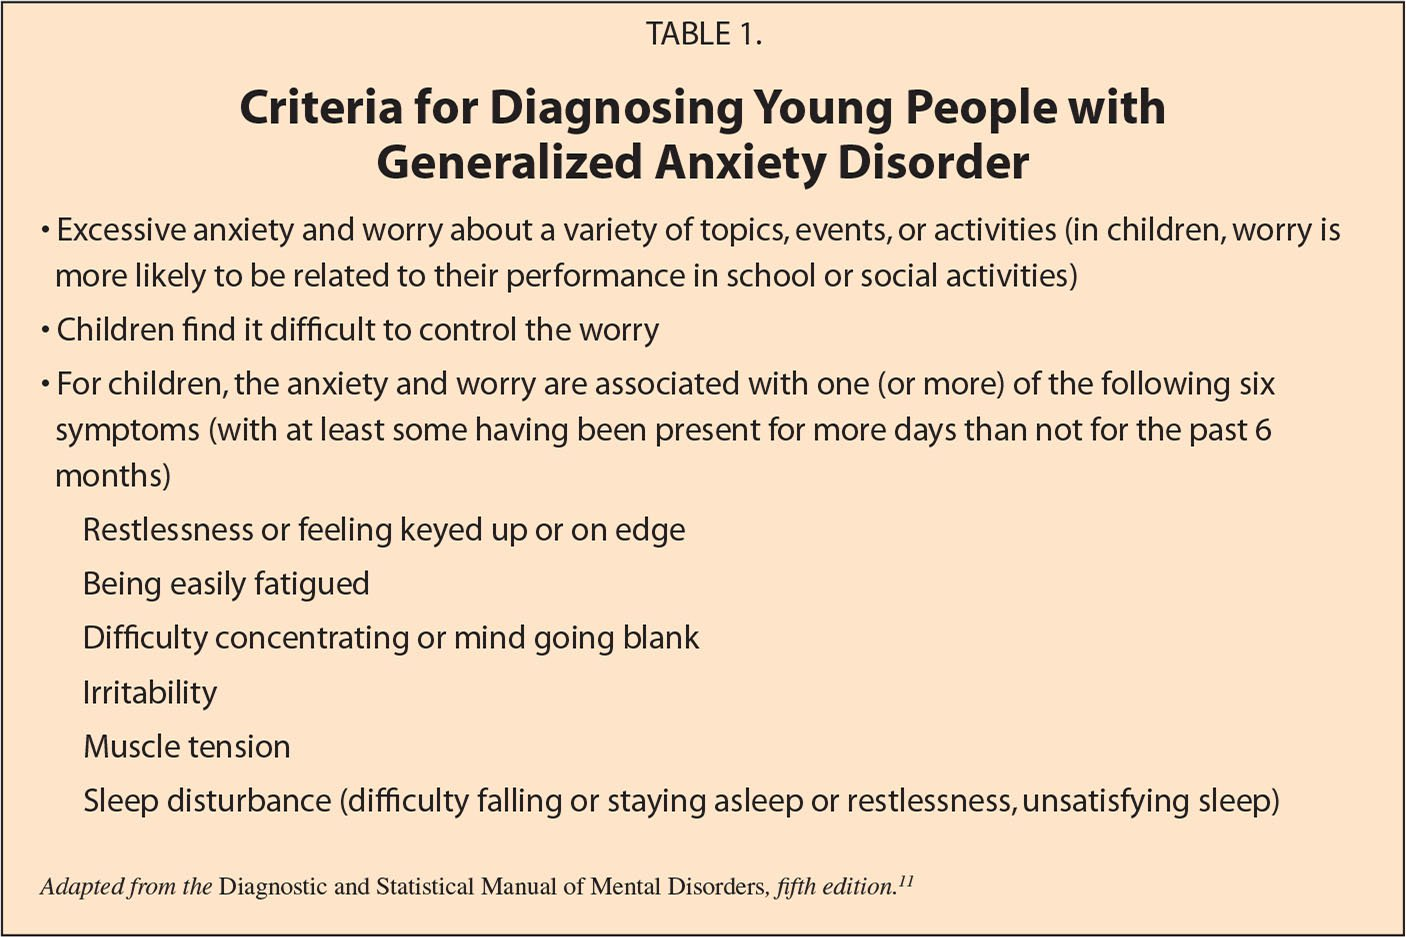 generalized anxiety disorder in young adults